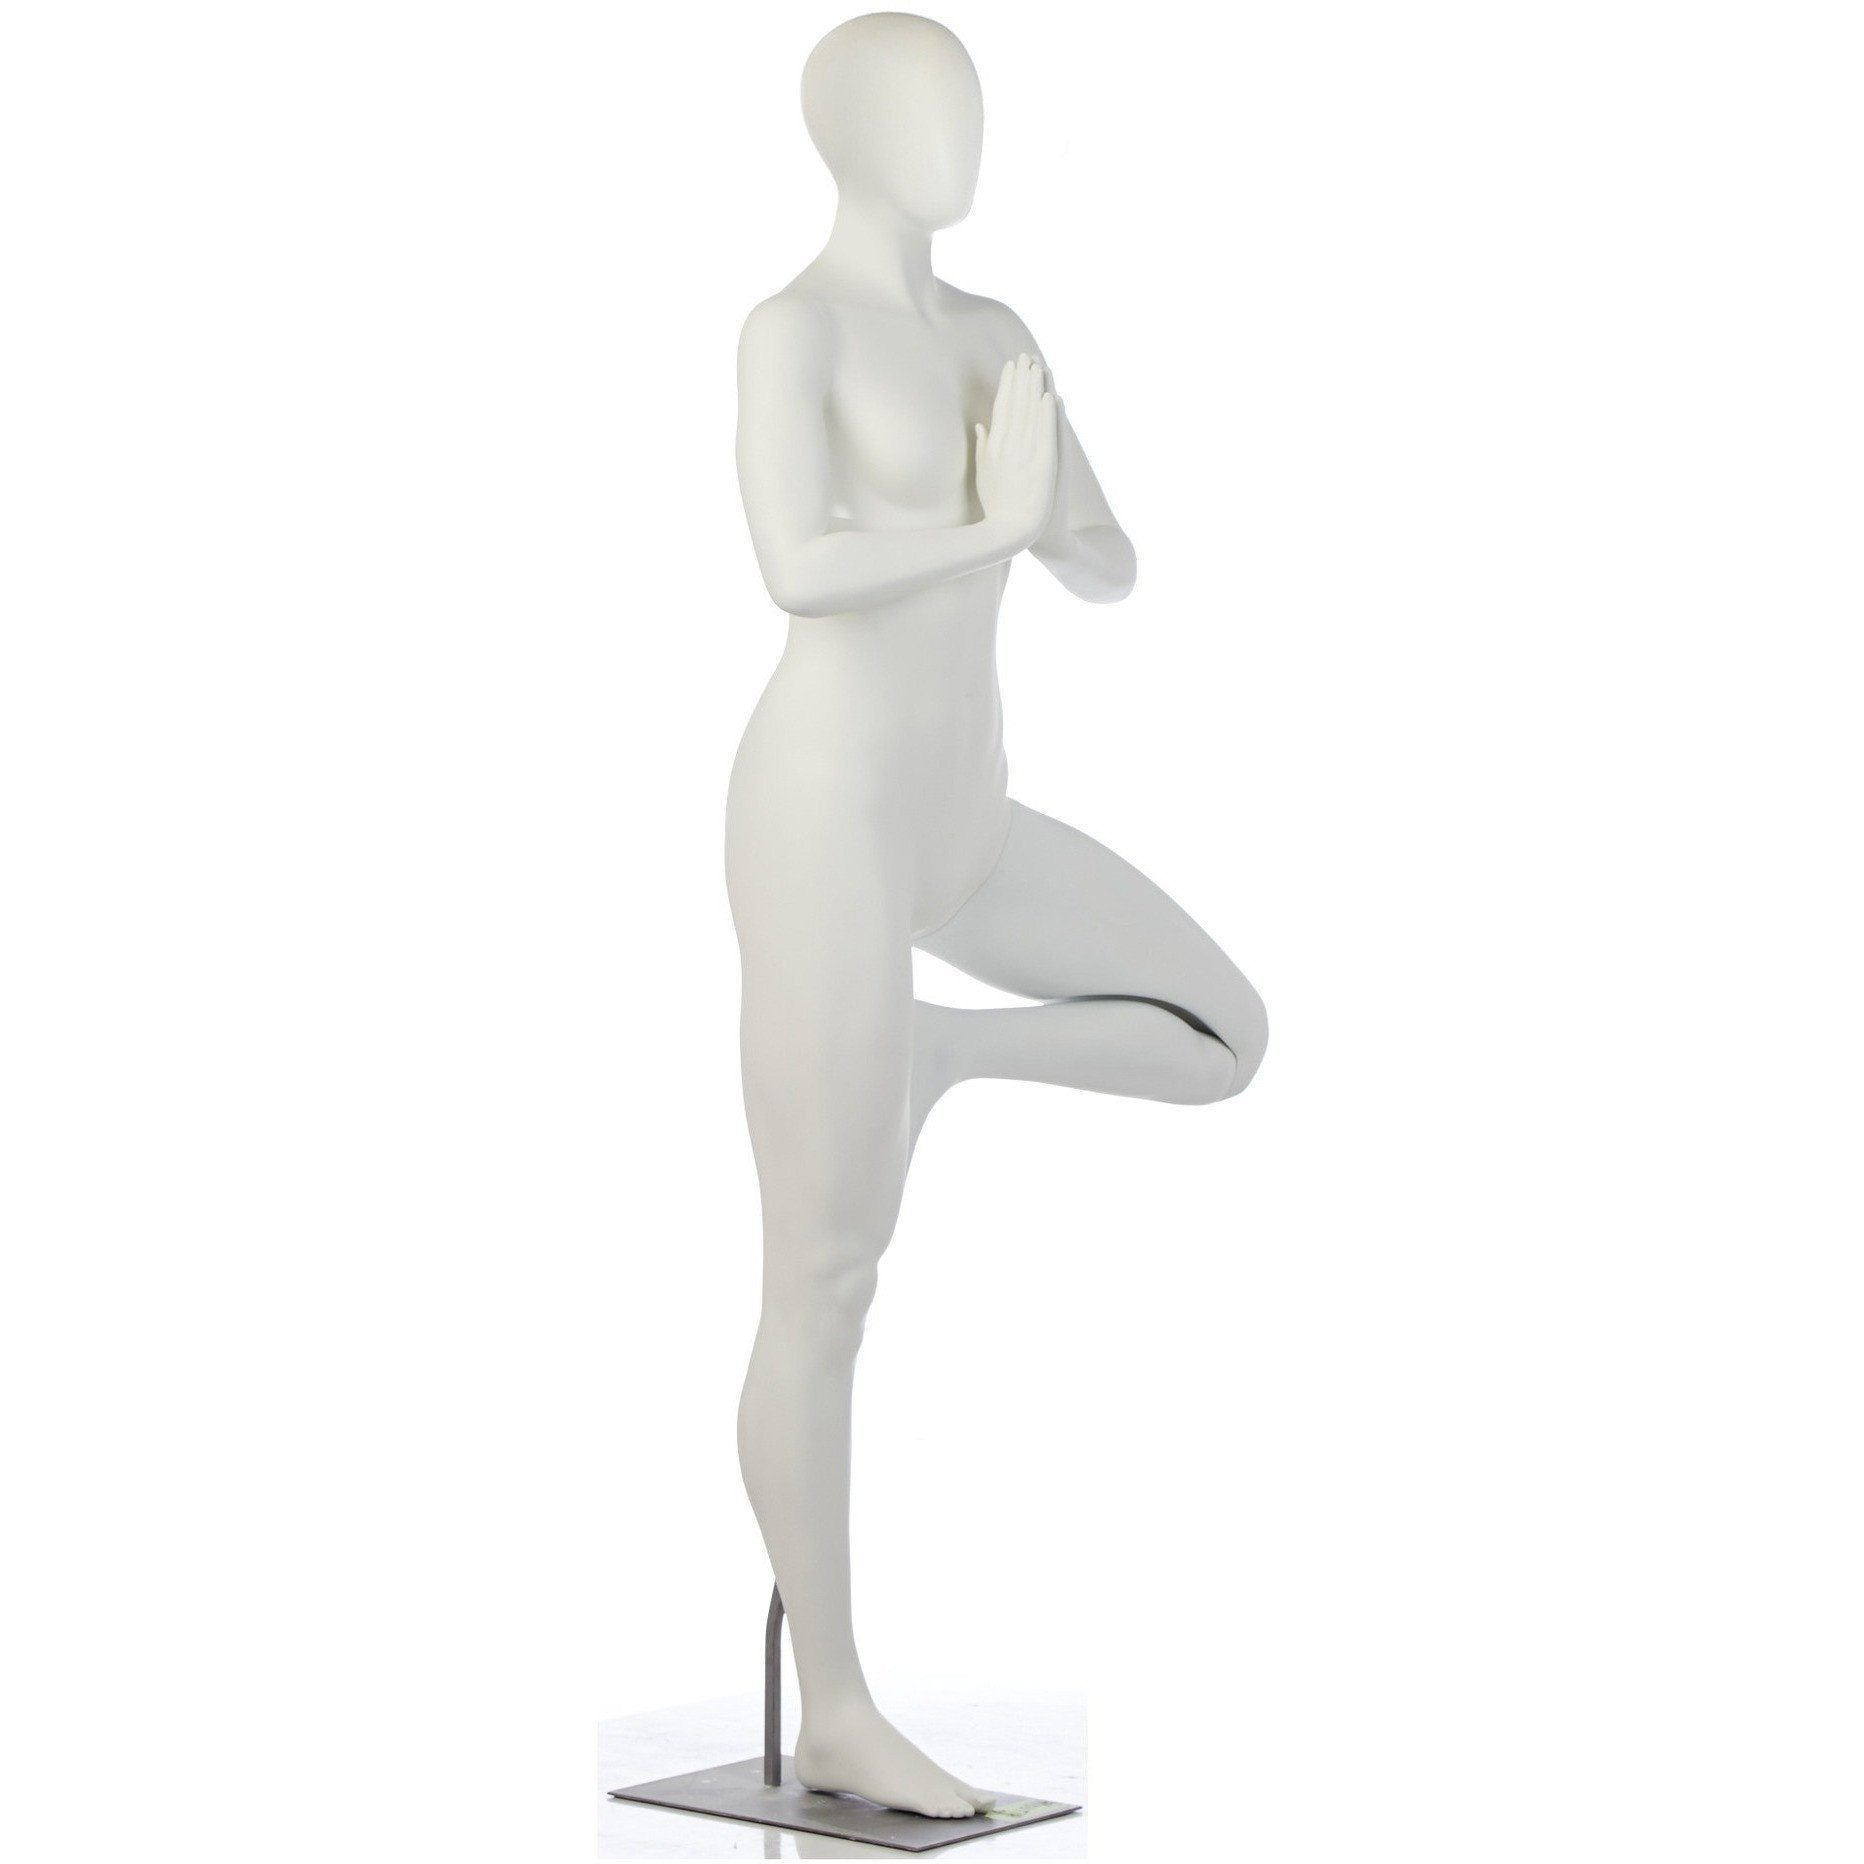 Female Yoga Mannequin in One-Legged Prayer Pose by Fusion Specialties Side